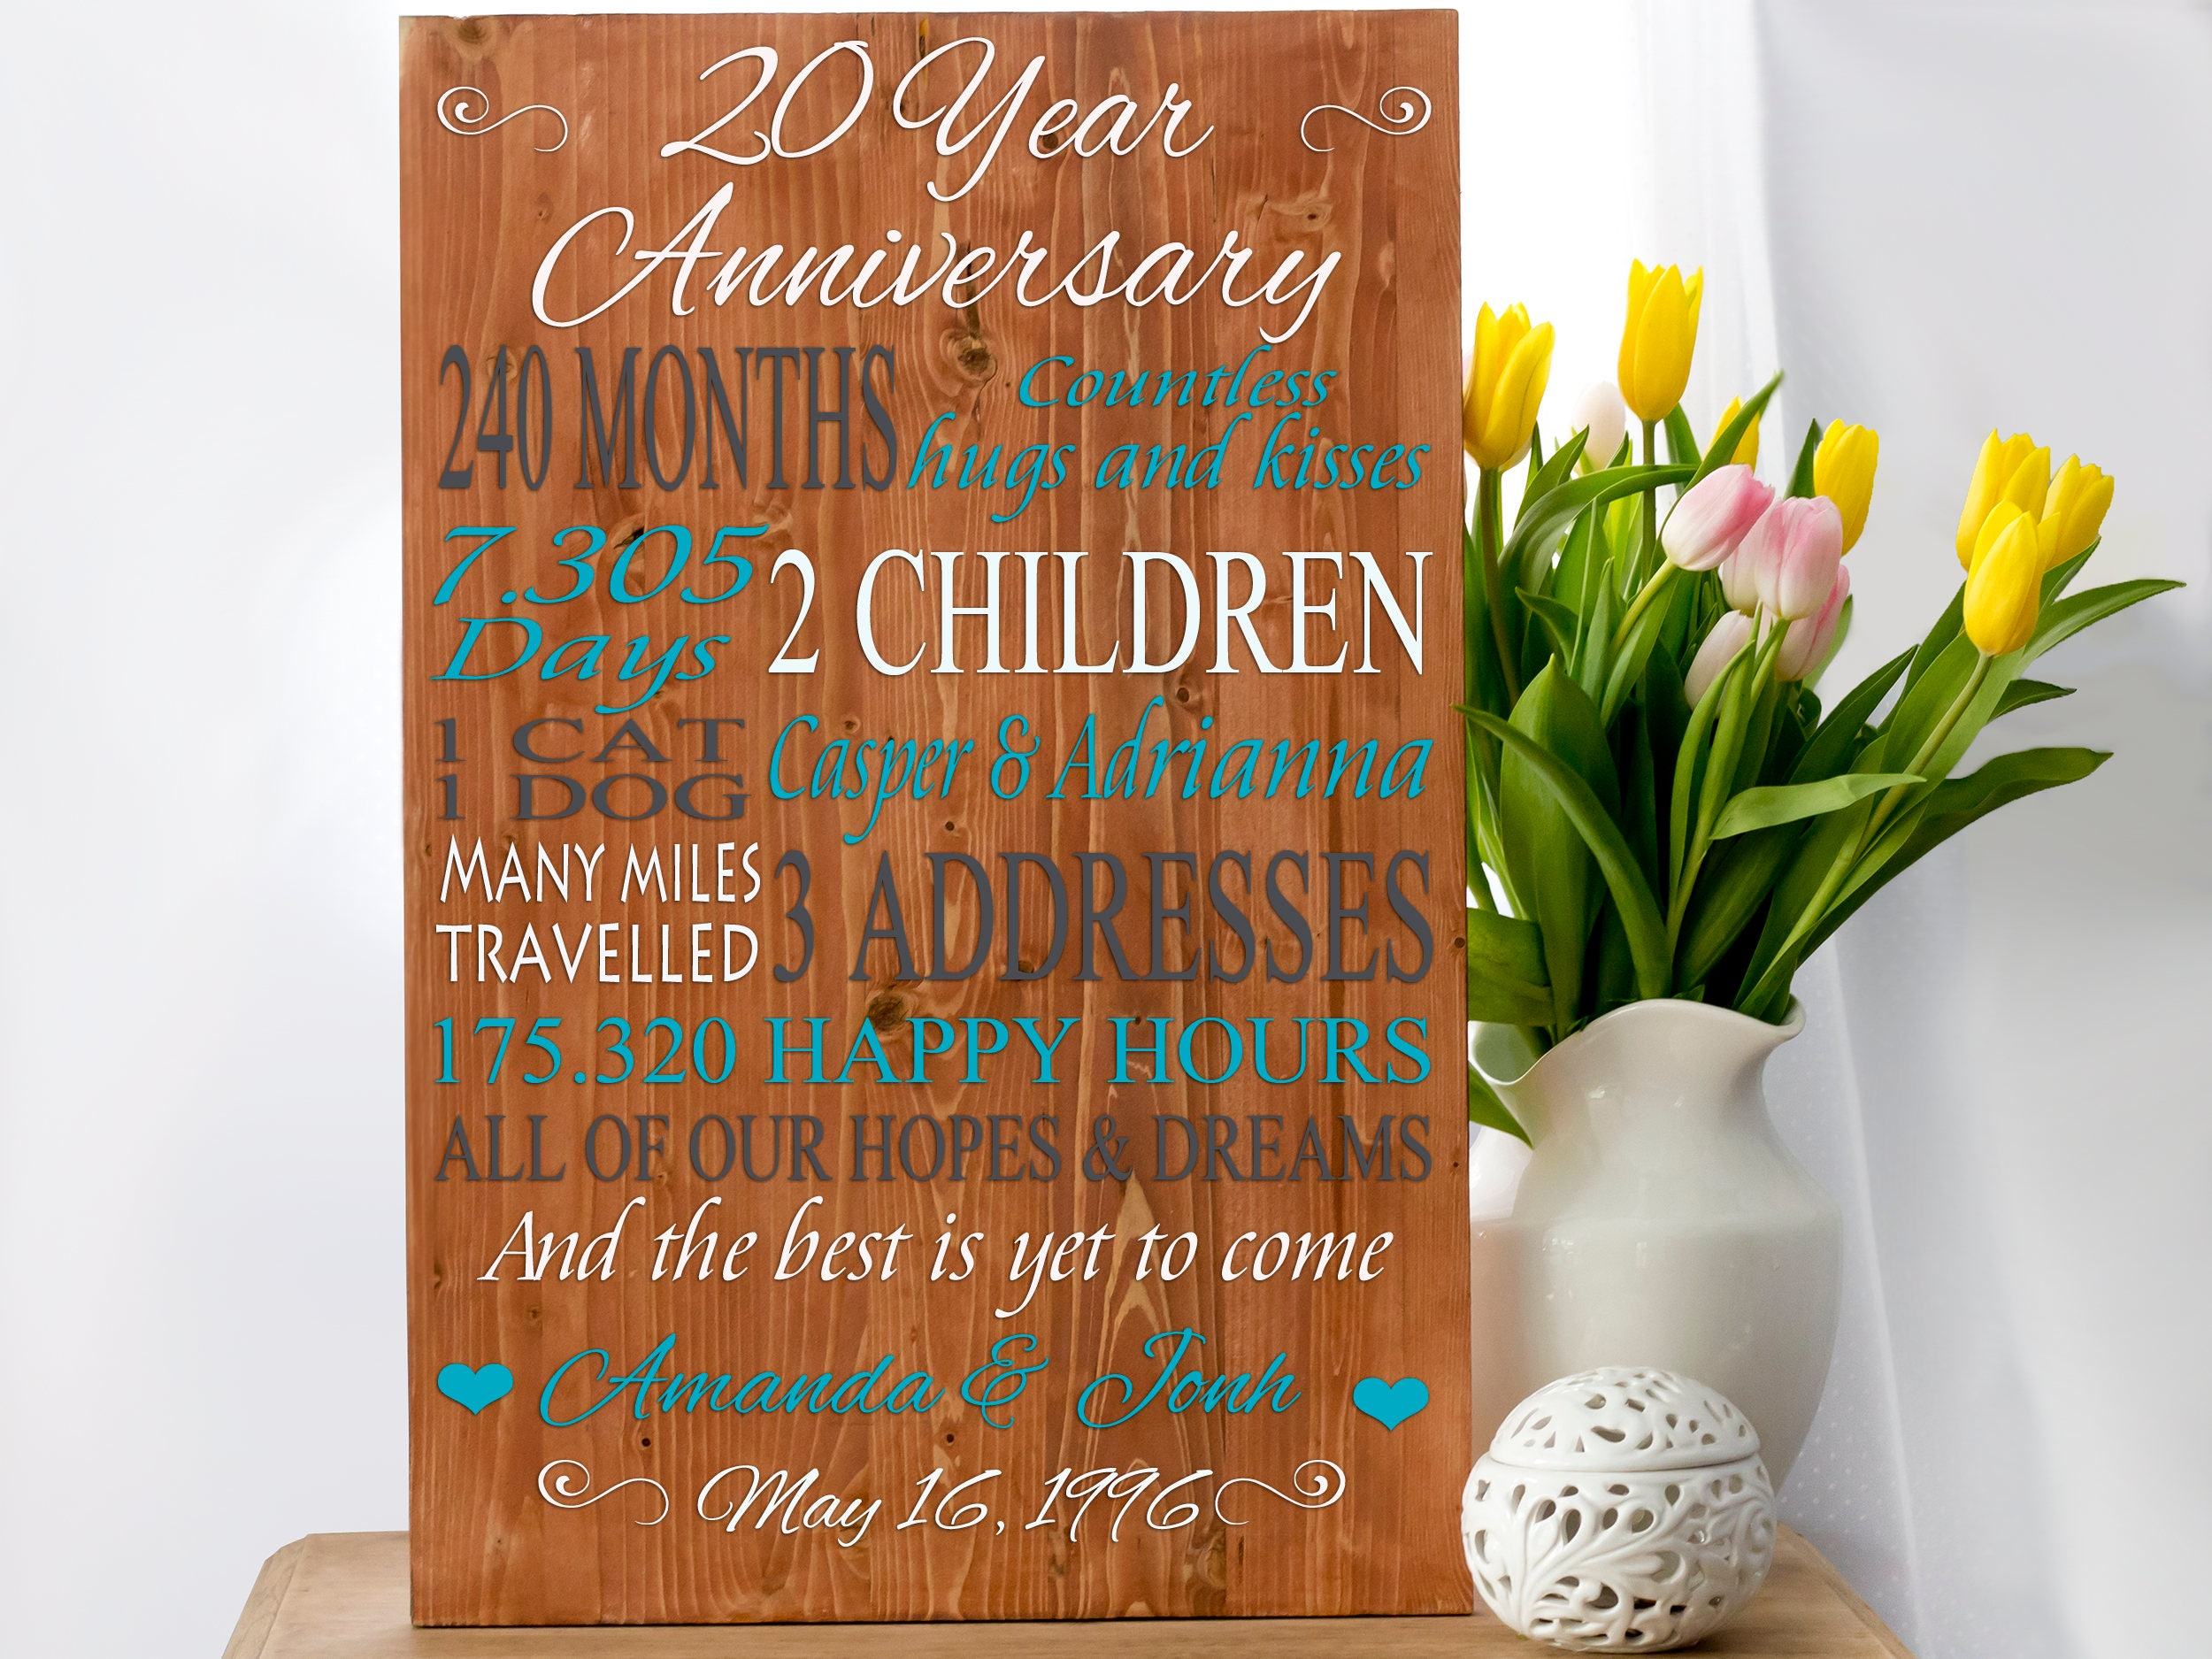 Traditional 20th Wedding Anniversary Gifts: 20th Anniversary Anniversary Gift 20 Anniversary 20 Year